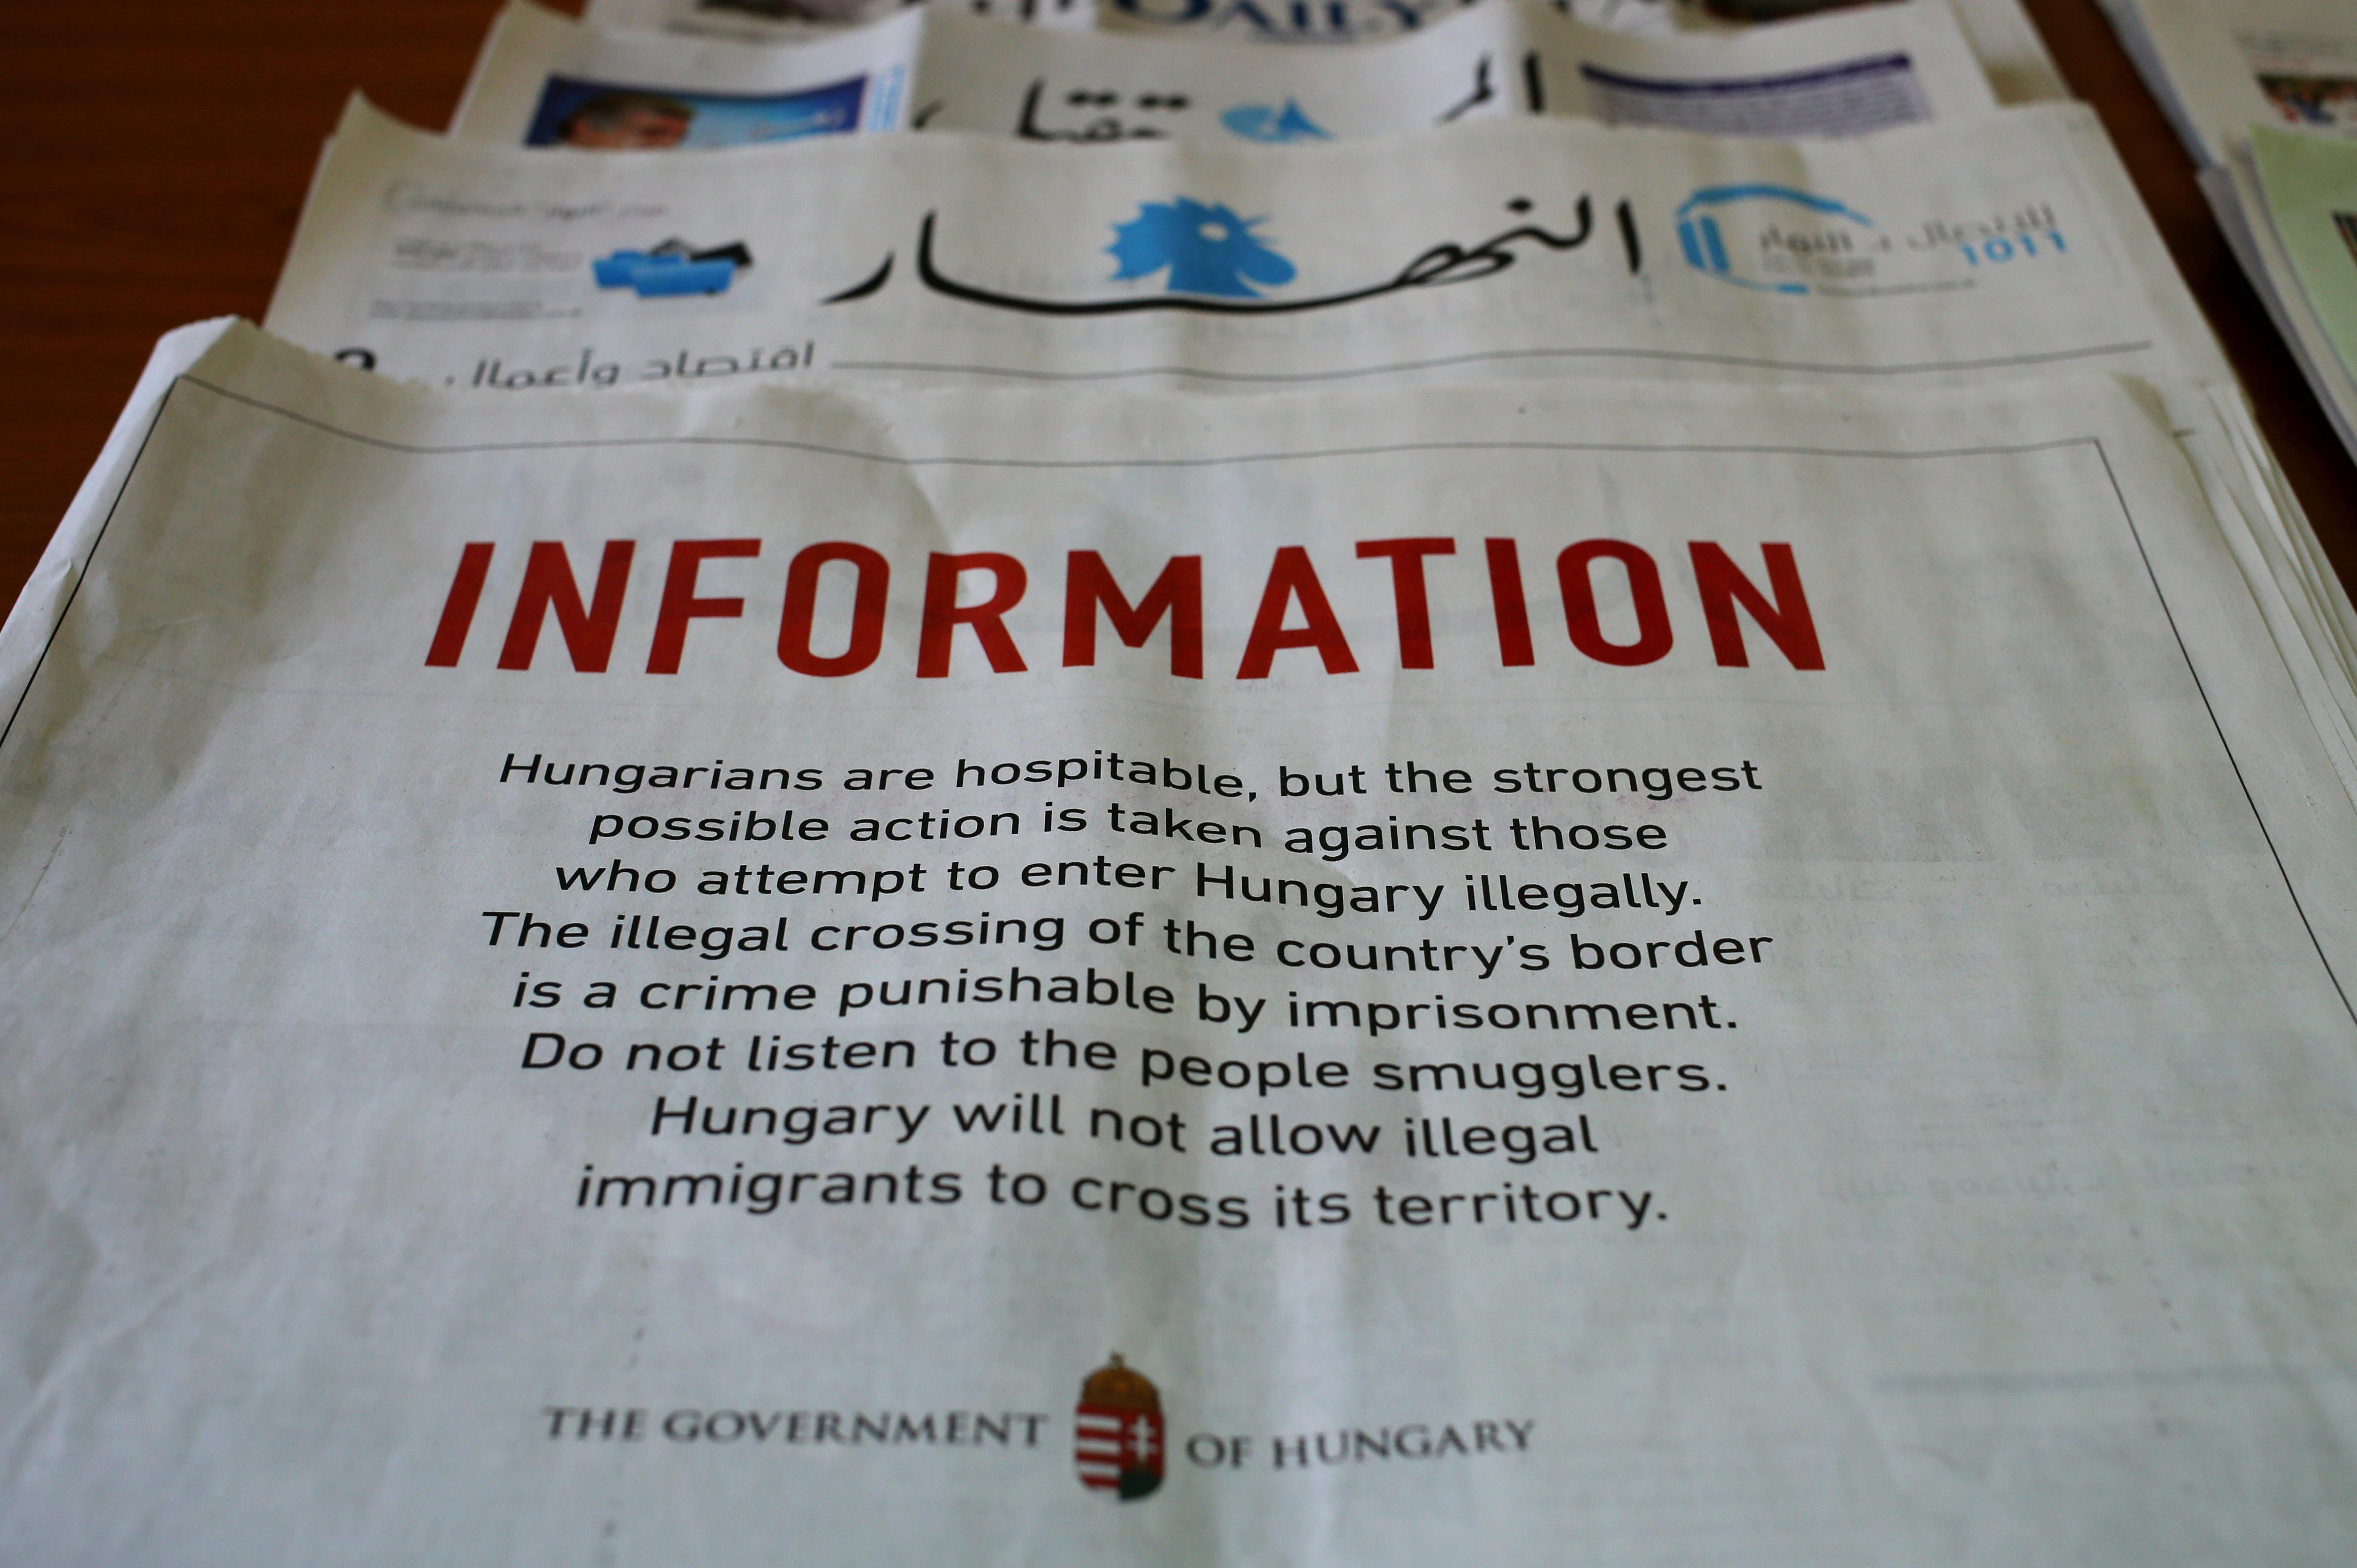 A full-page advertisement by the Hungarian government that was published in Lebanese newspapers, warning migrants not to enter the country illegally saying it is a crime punishable by imprisonment, in Beirut, Lebanon, Sept. 21, 2015.